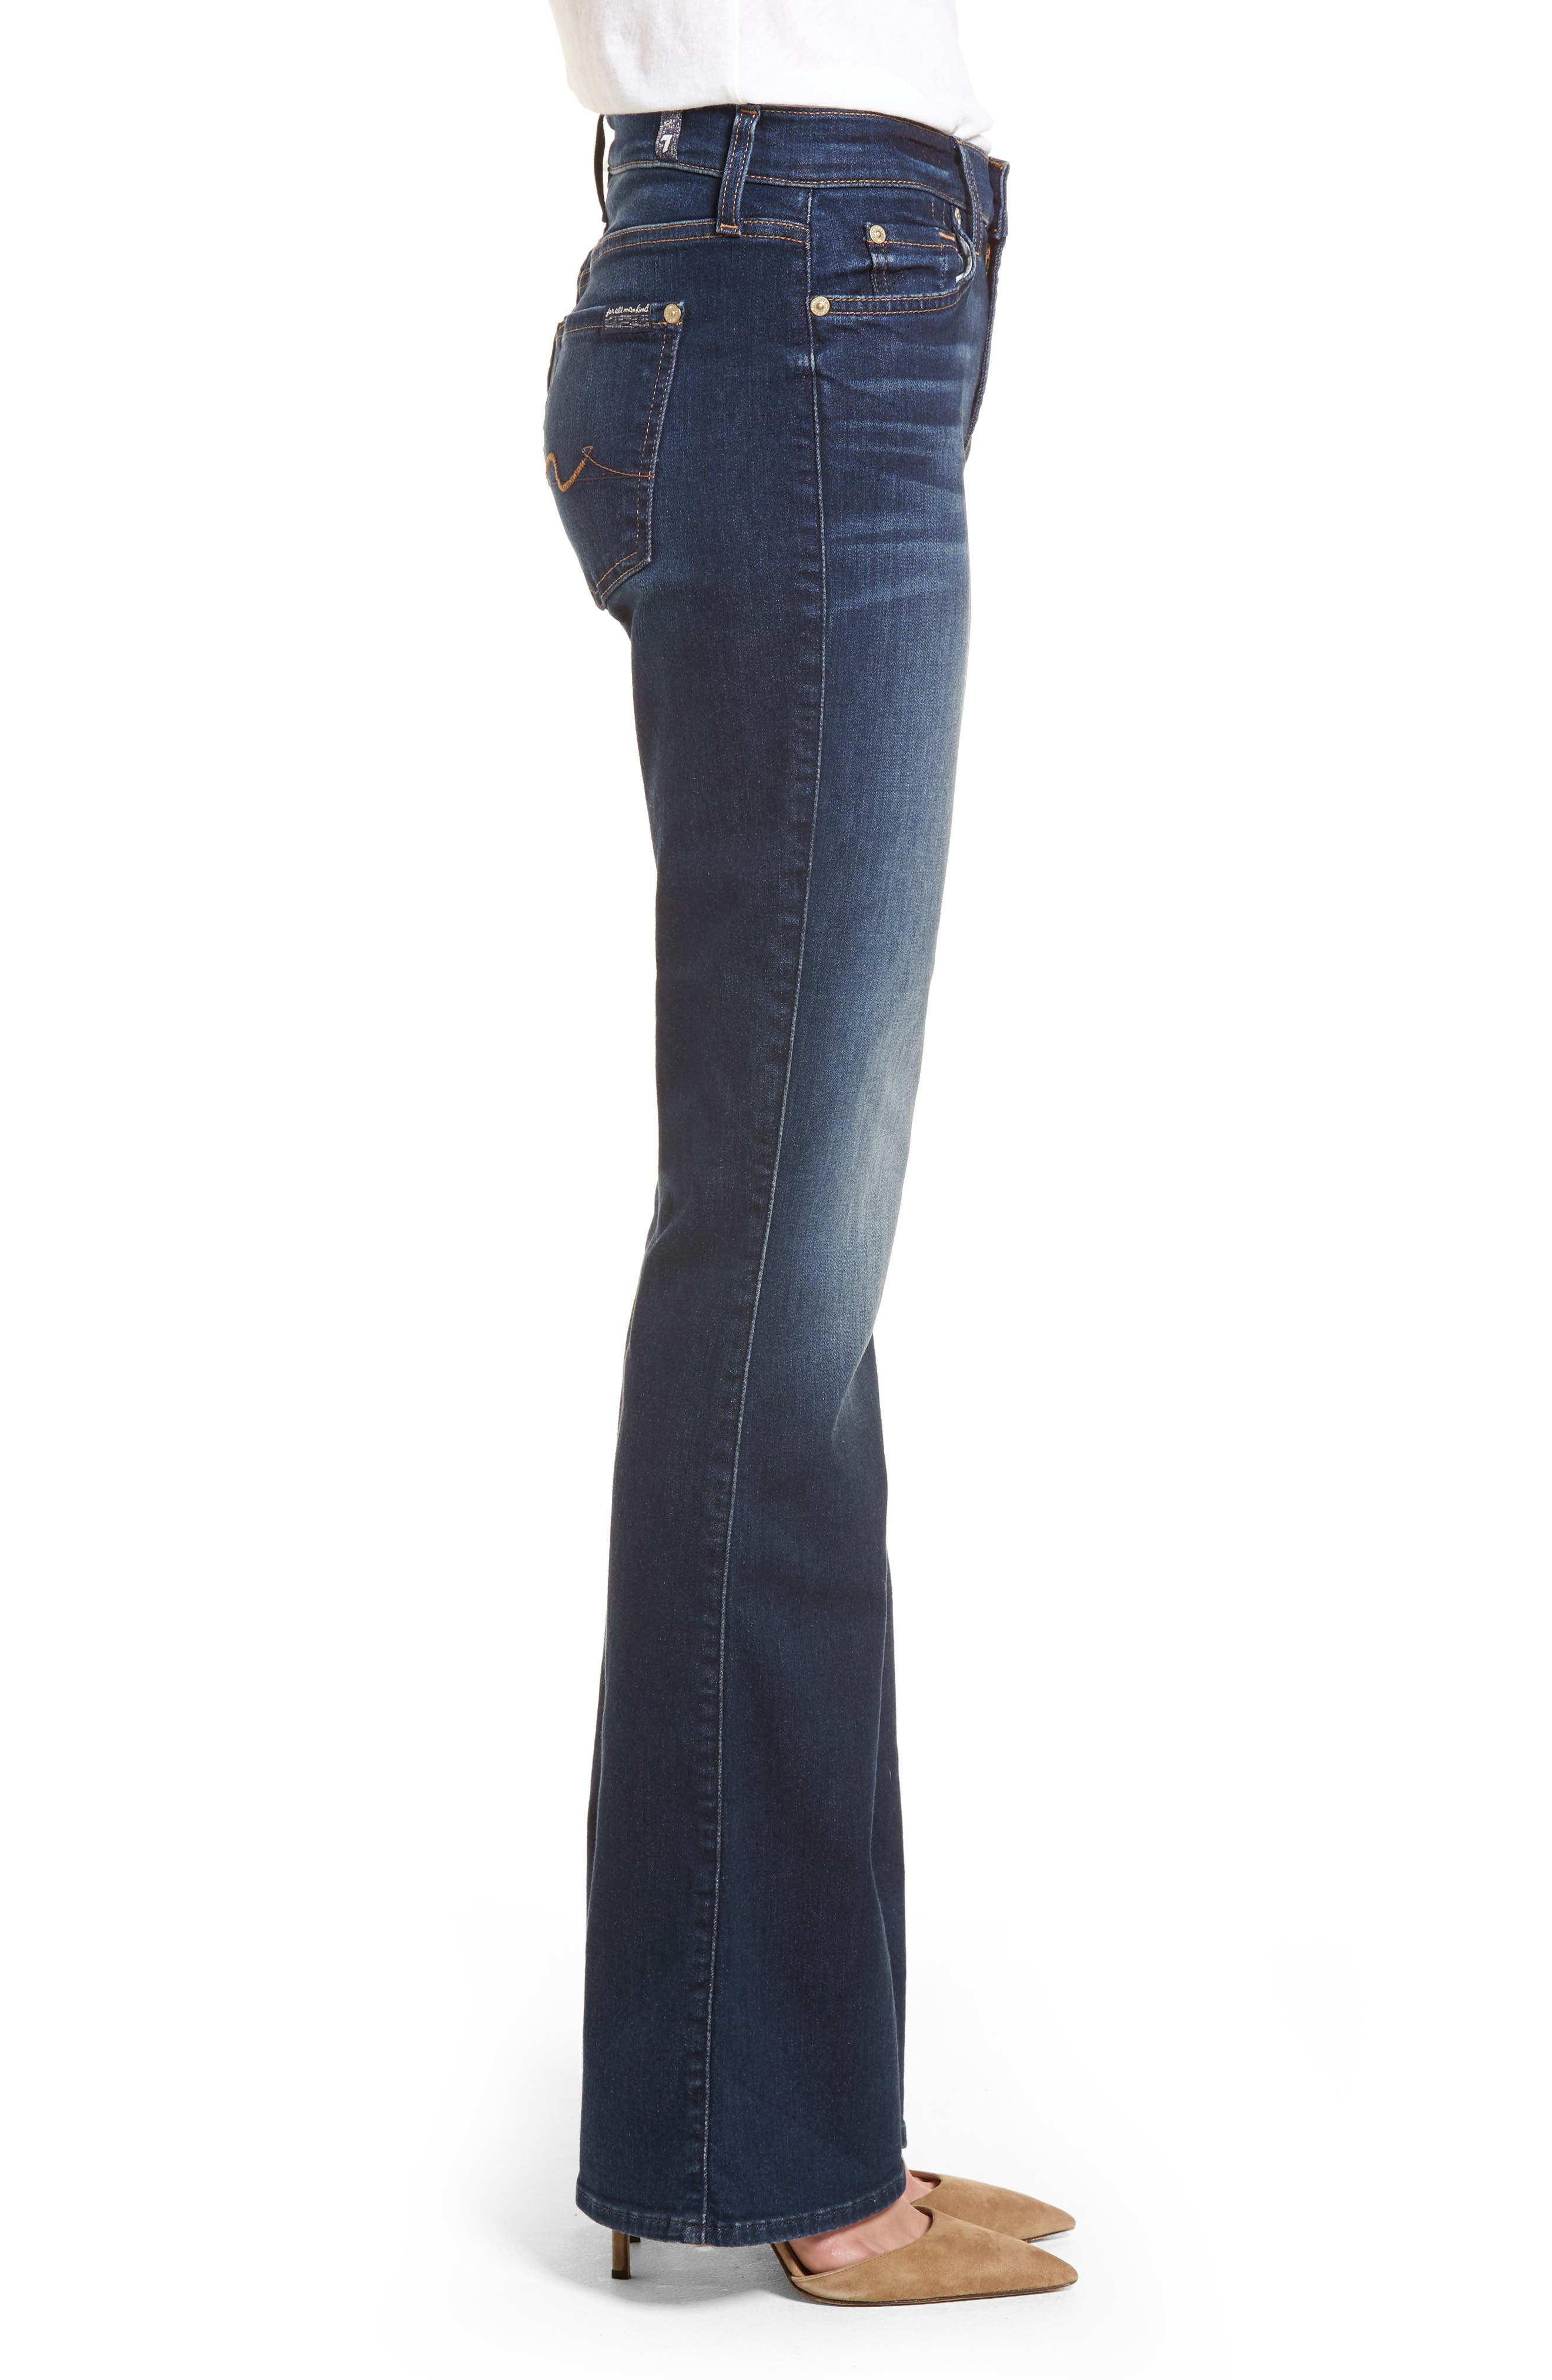 b(air) Iconic Bootcut Jeans,                             Alternate thumbnail 3, color,                             MORENO